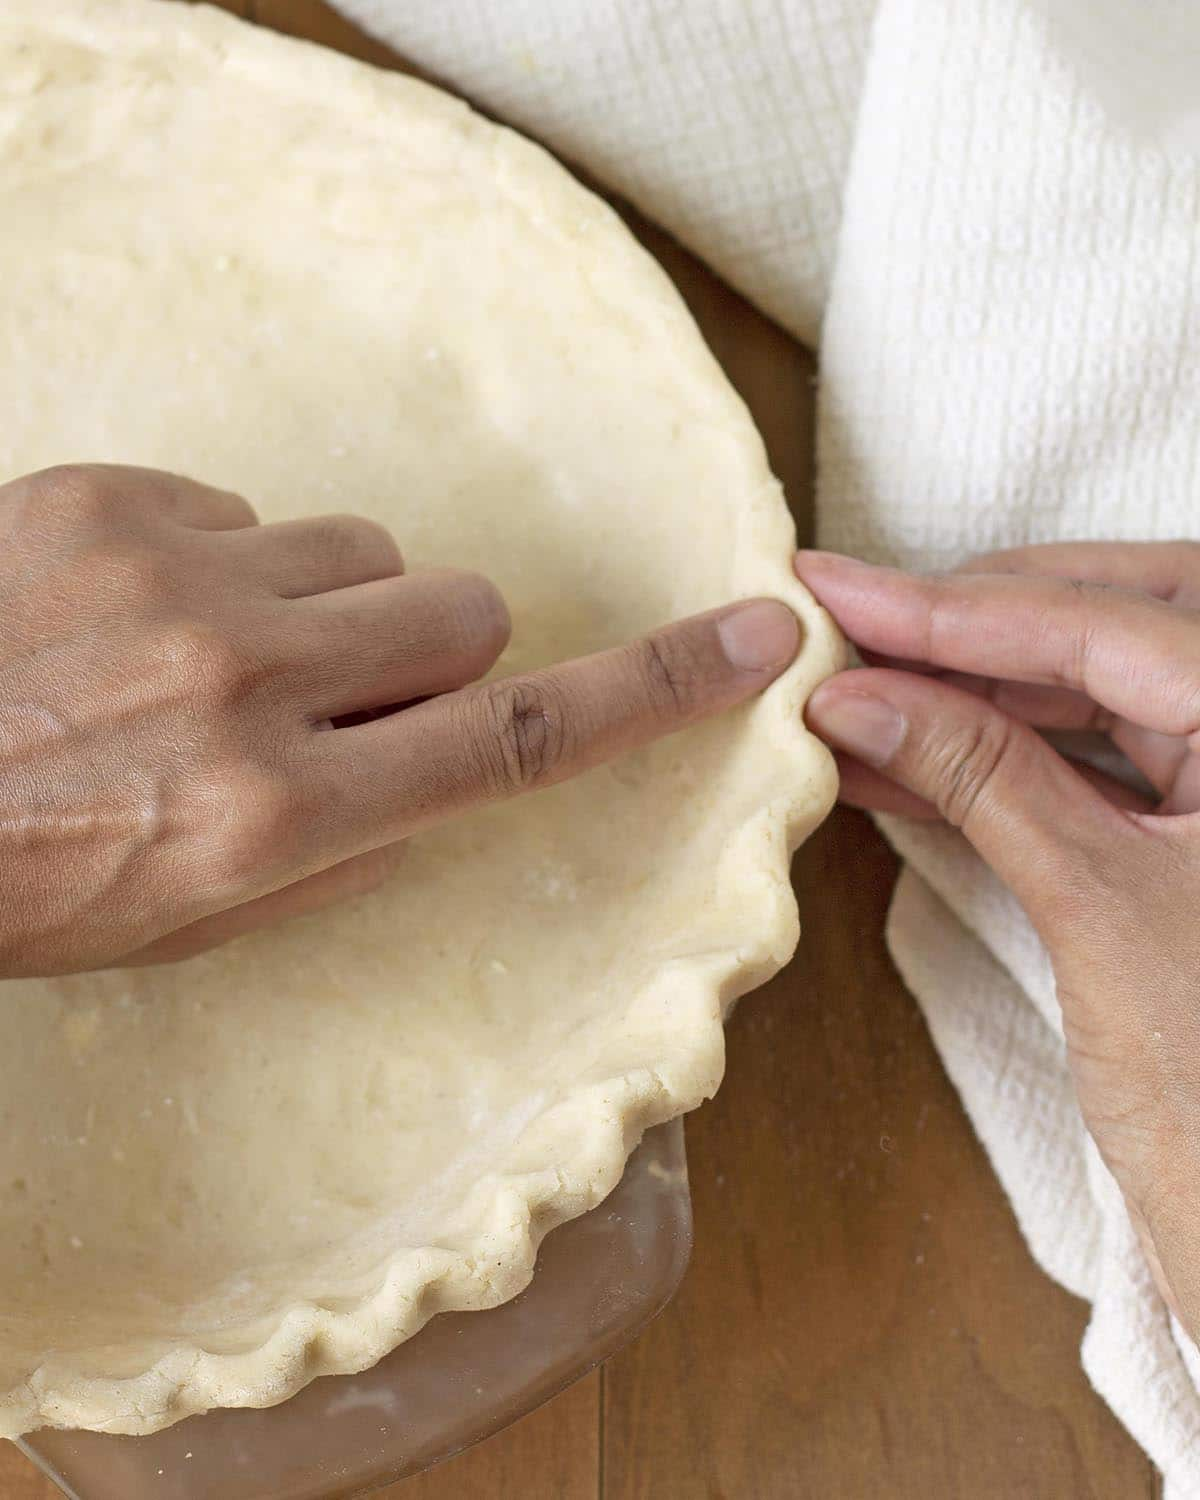 Hands crimping the edge of a pie crust.